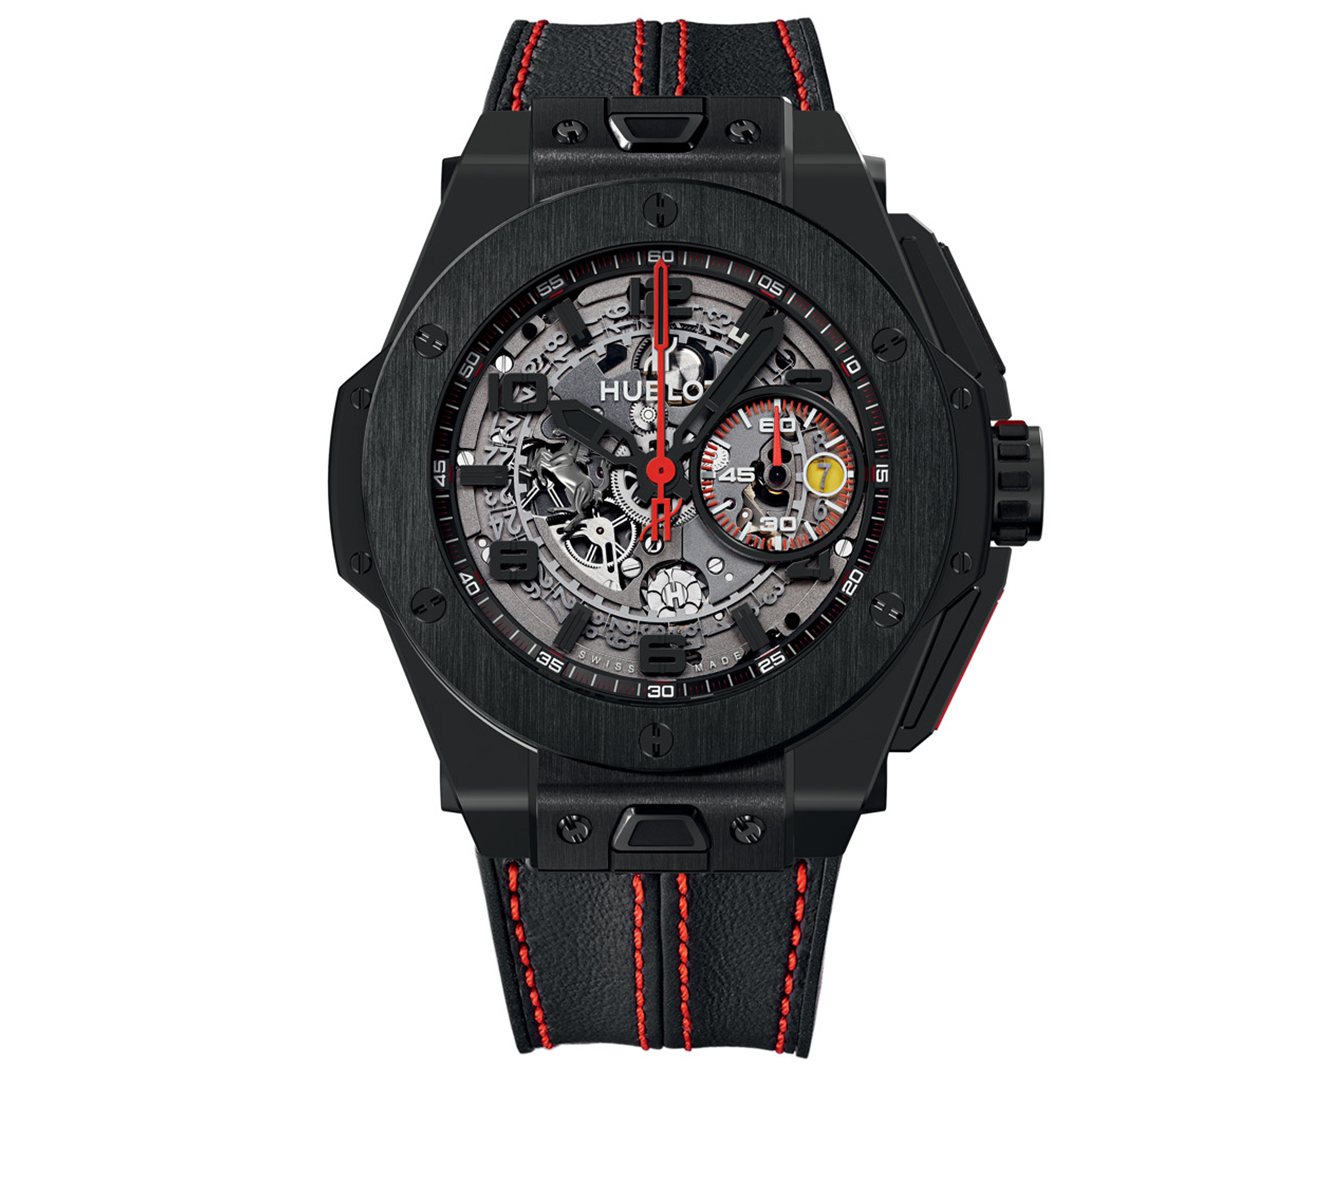 Часы Ferrari All Black HUBLOT Big Bang 401.CX.0123.VR - фото 1 – Mercury